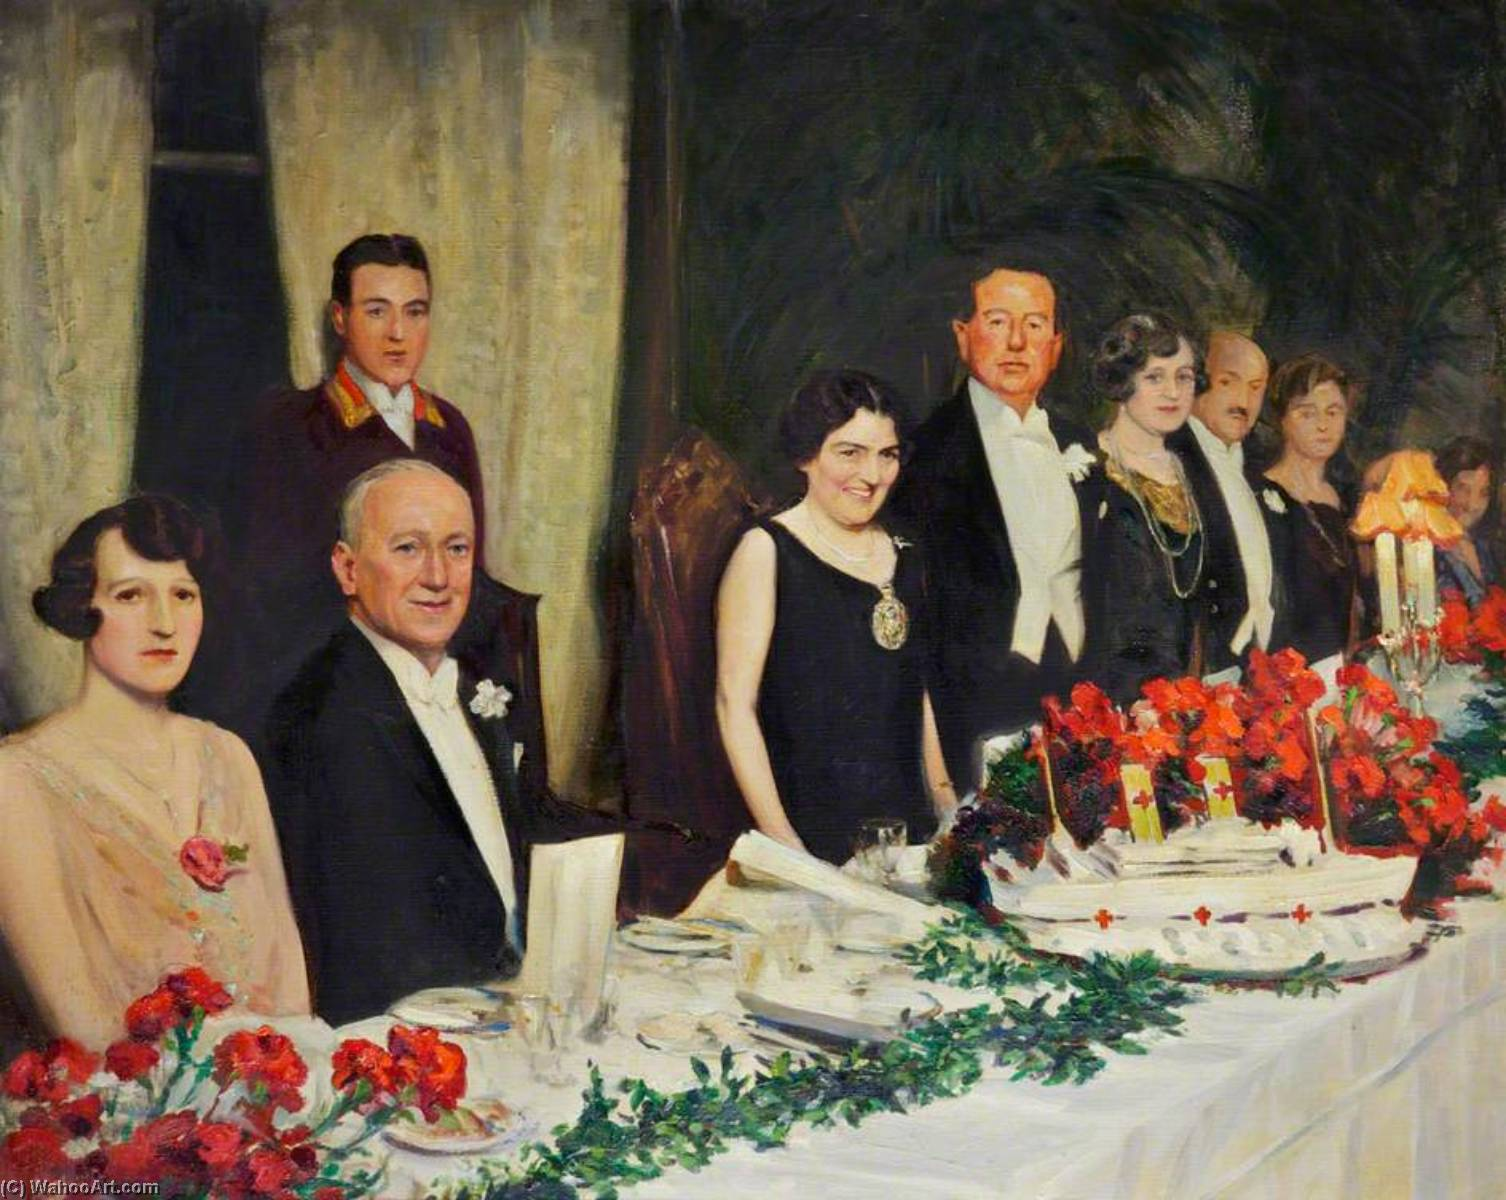 Margaret Beavan Speaking at a Charity Dinner in 1927, Oil On Canvas by John Archibald Alexander Berrie